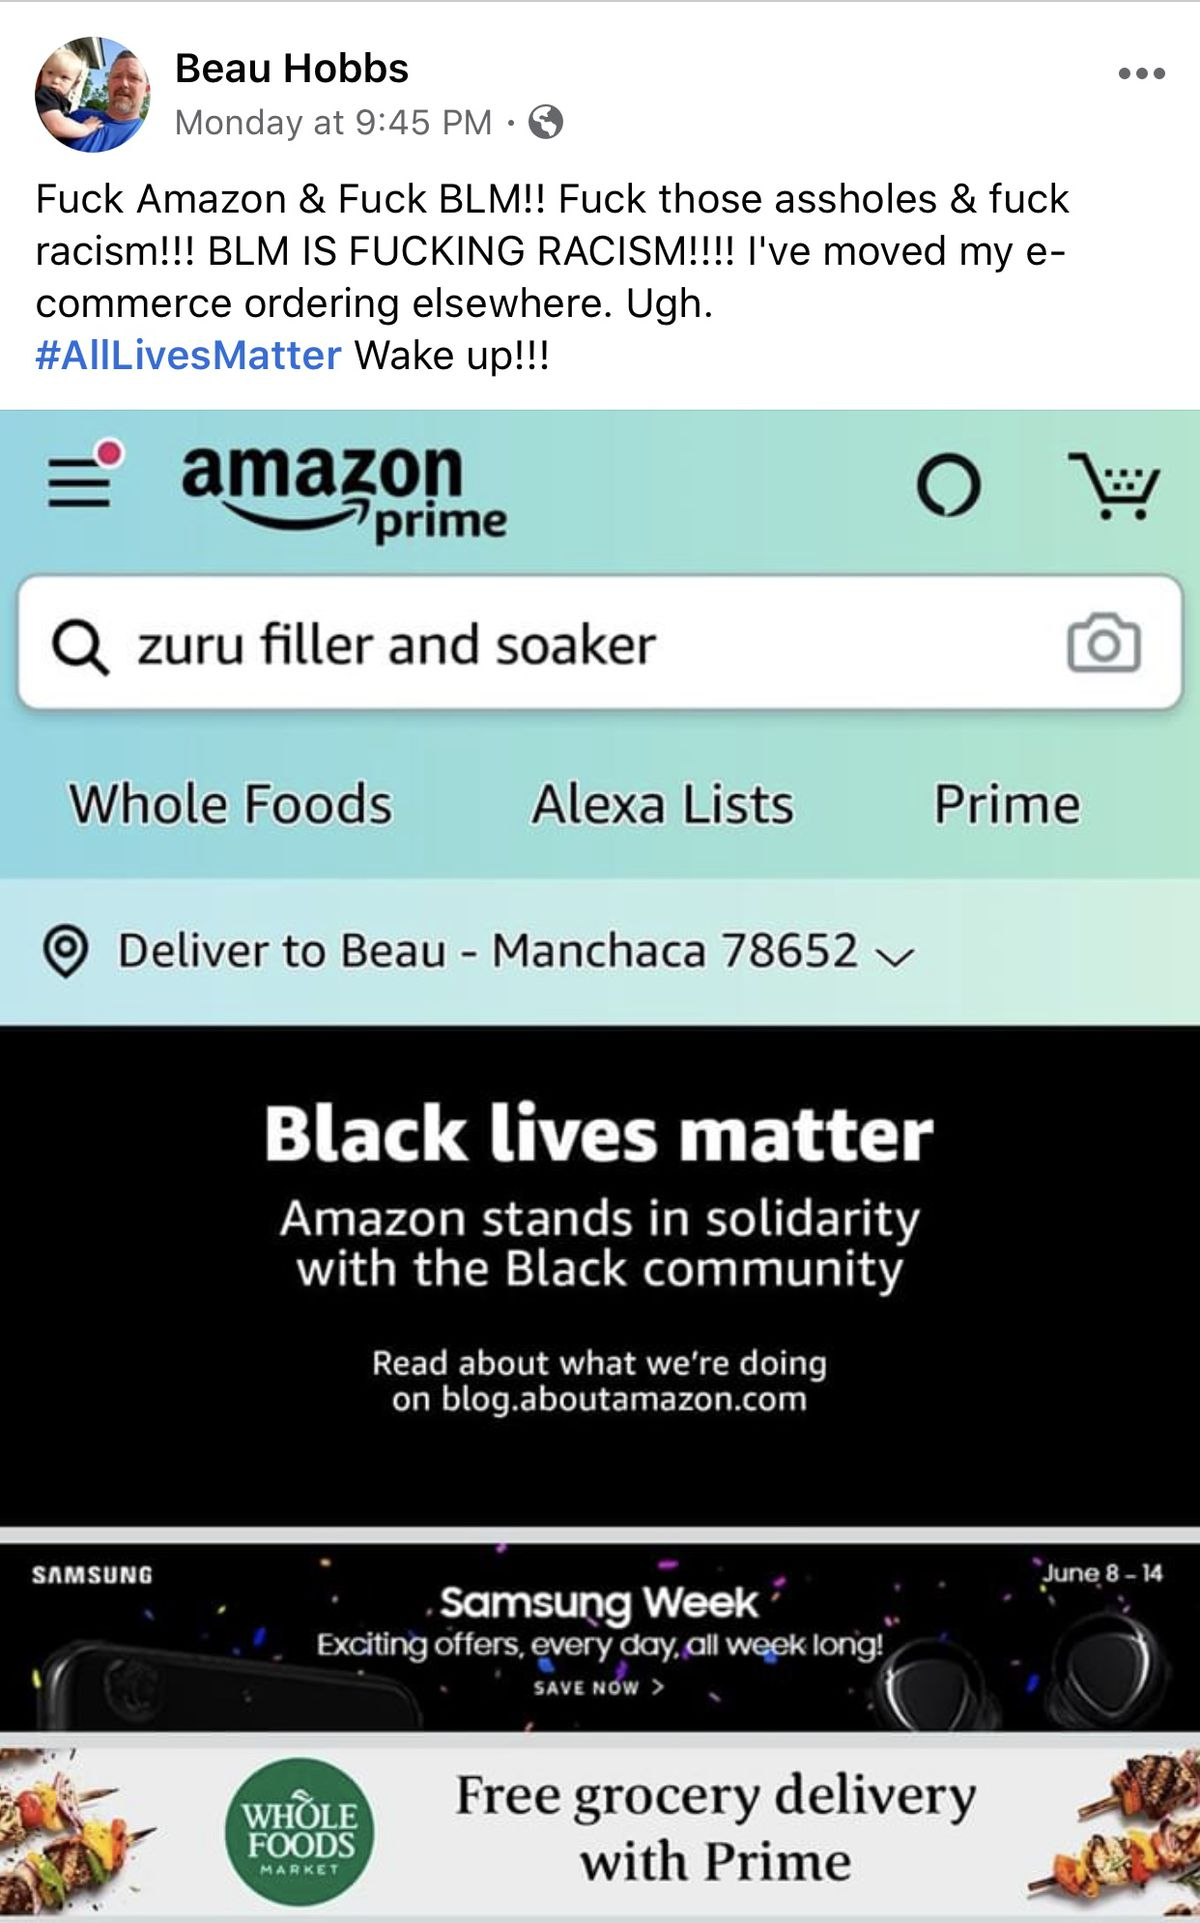 """Screenshots from Beau Hobb's Facebook that says """"Fuck Amazon & Fuck BLM! [...] """"BLM IS FUCKING RACISM"""""""